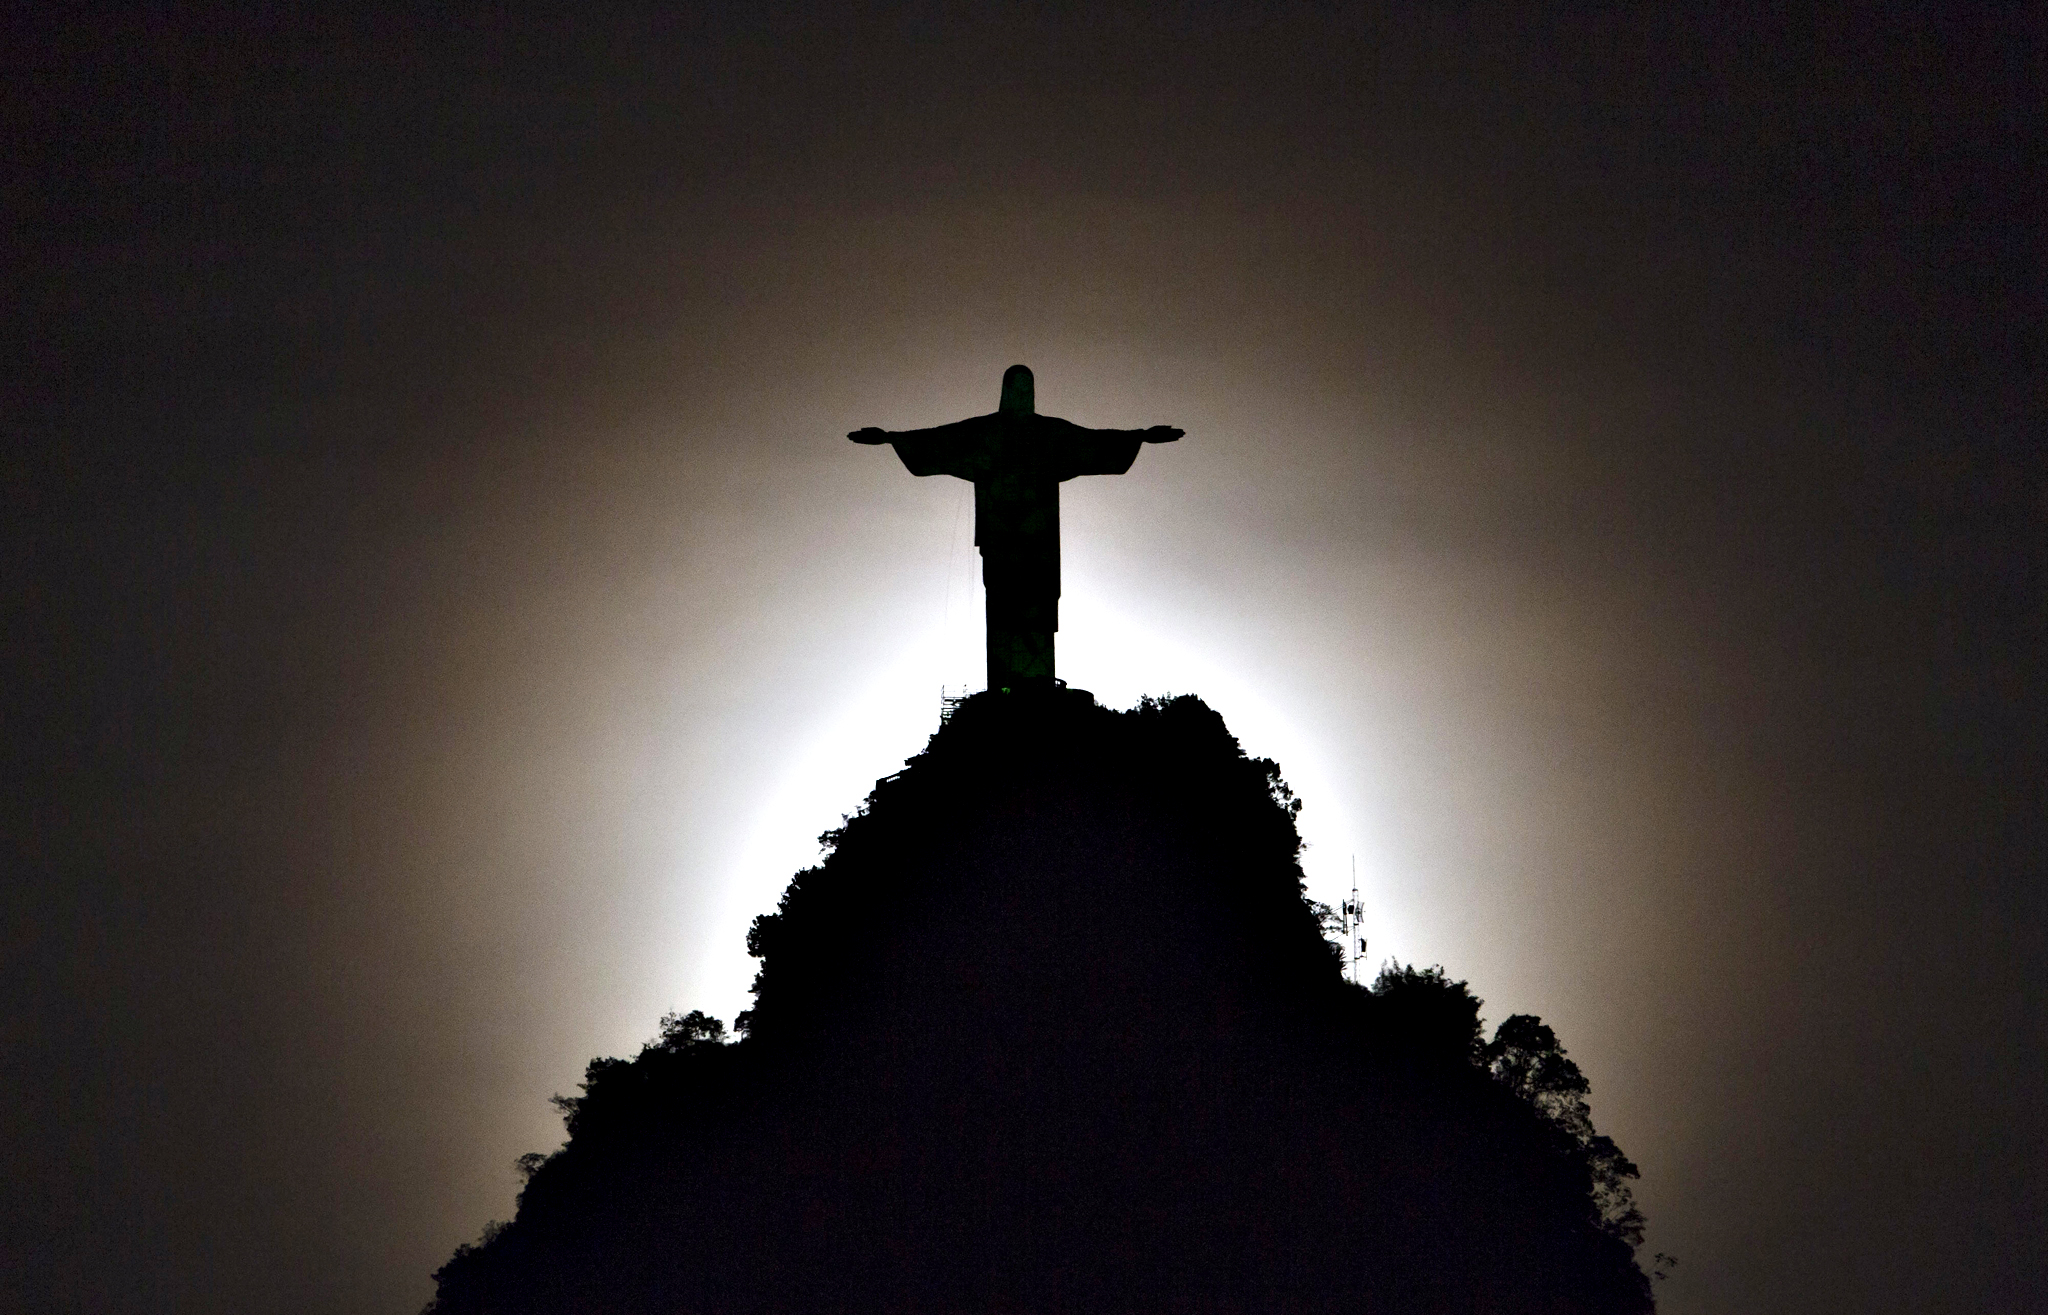 Christ the Redeemer statue is silhouetted against the glow of the moonset in Rio de Janeiro, Brazil, Tuesday, May 13, 2014.  As opening day for the World Cup approaches, people continue to stage protests, some about the billions of dollars spent on the World Cup at a time of social hardship, but soccer is still a unifying force. The international soccer tournament will be the first in the South American nation since 1950.